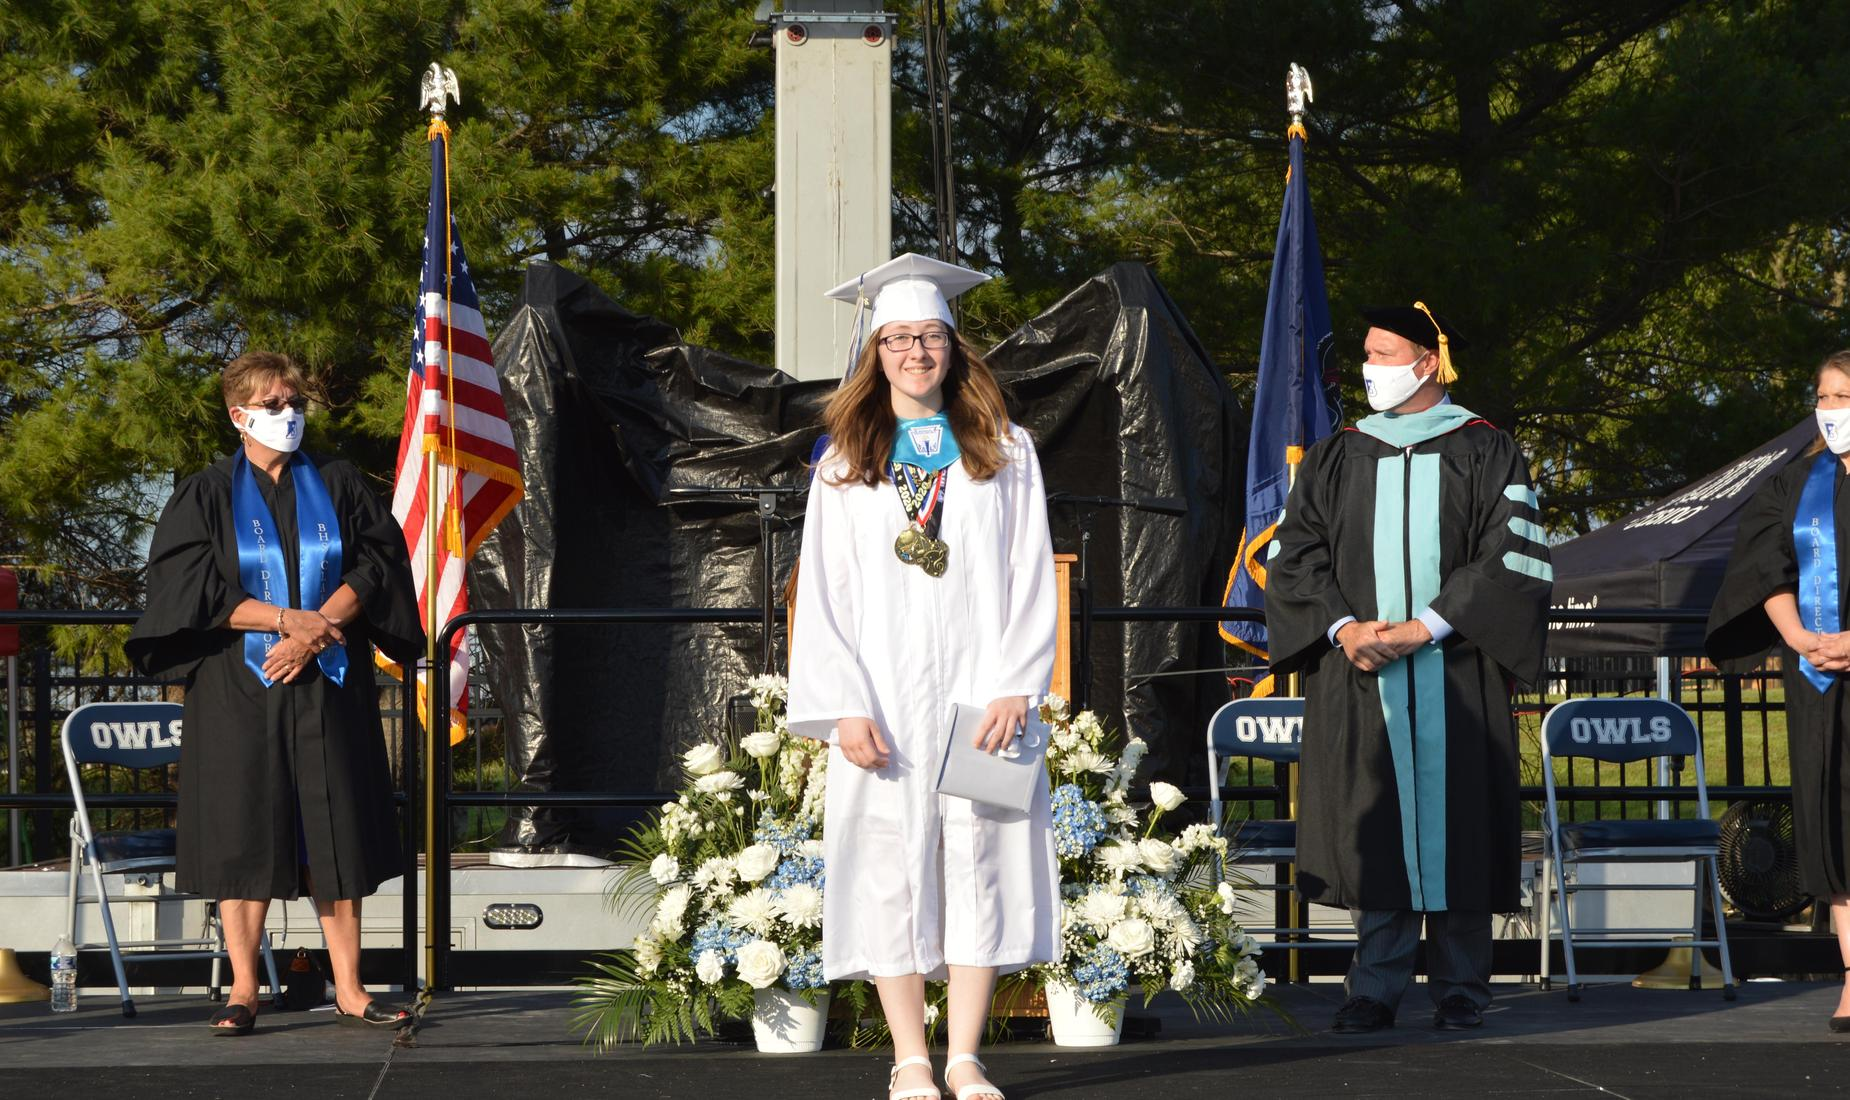 BHS Senior dresses in white graduation cap and gown poses on stage holding her diploma